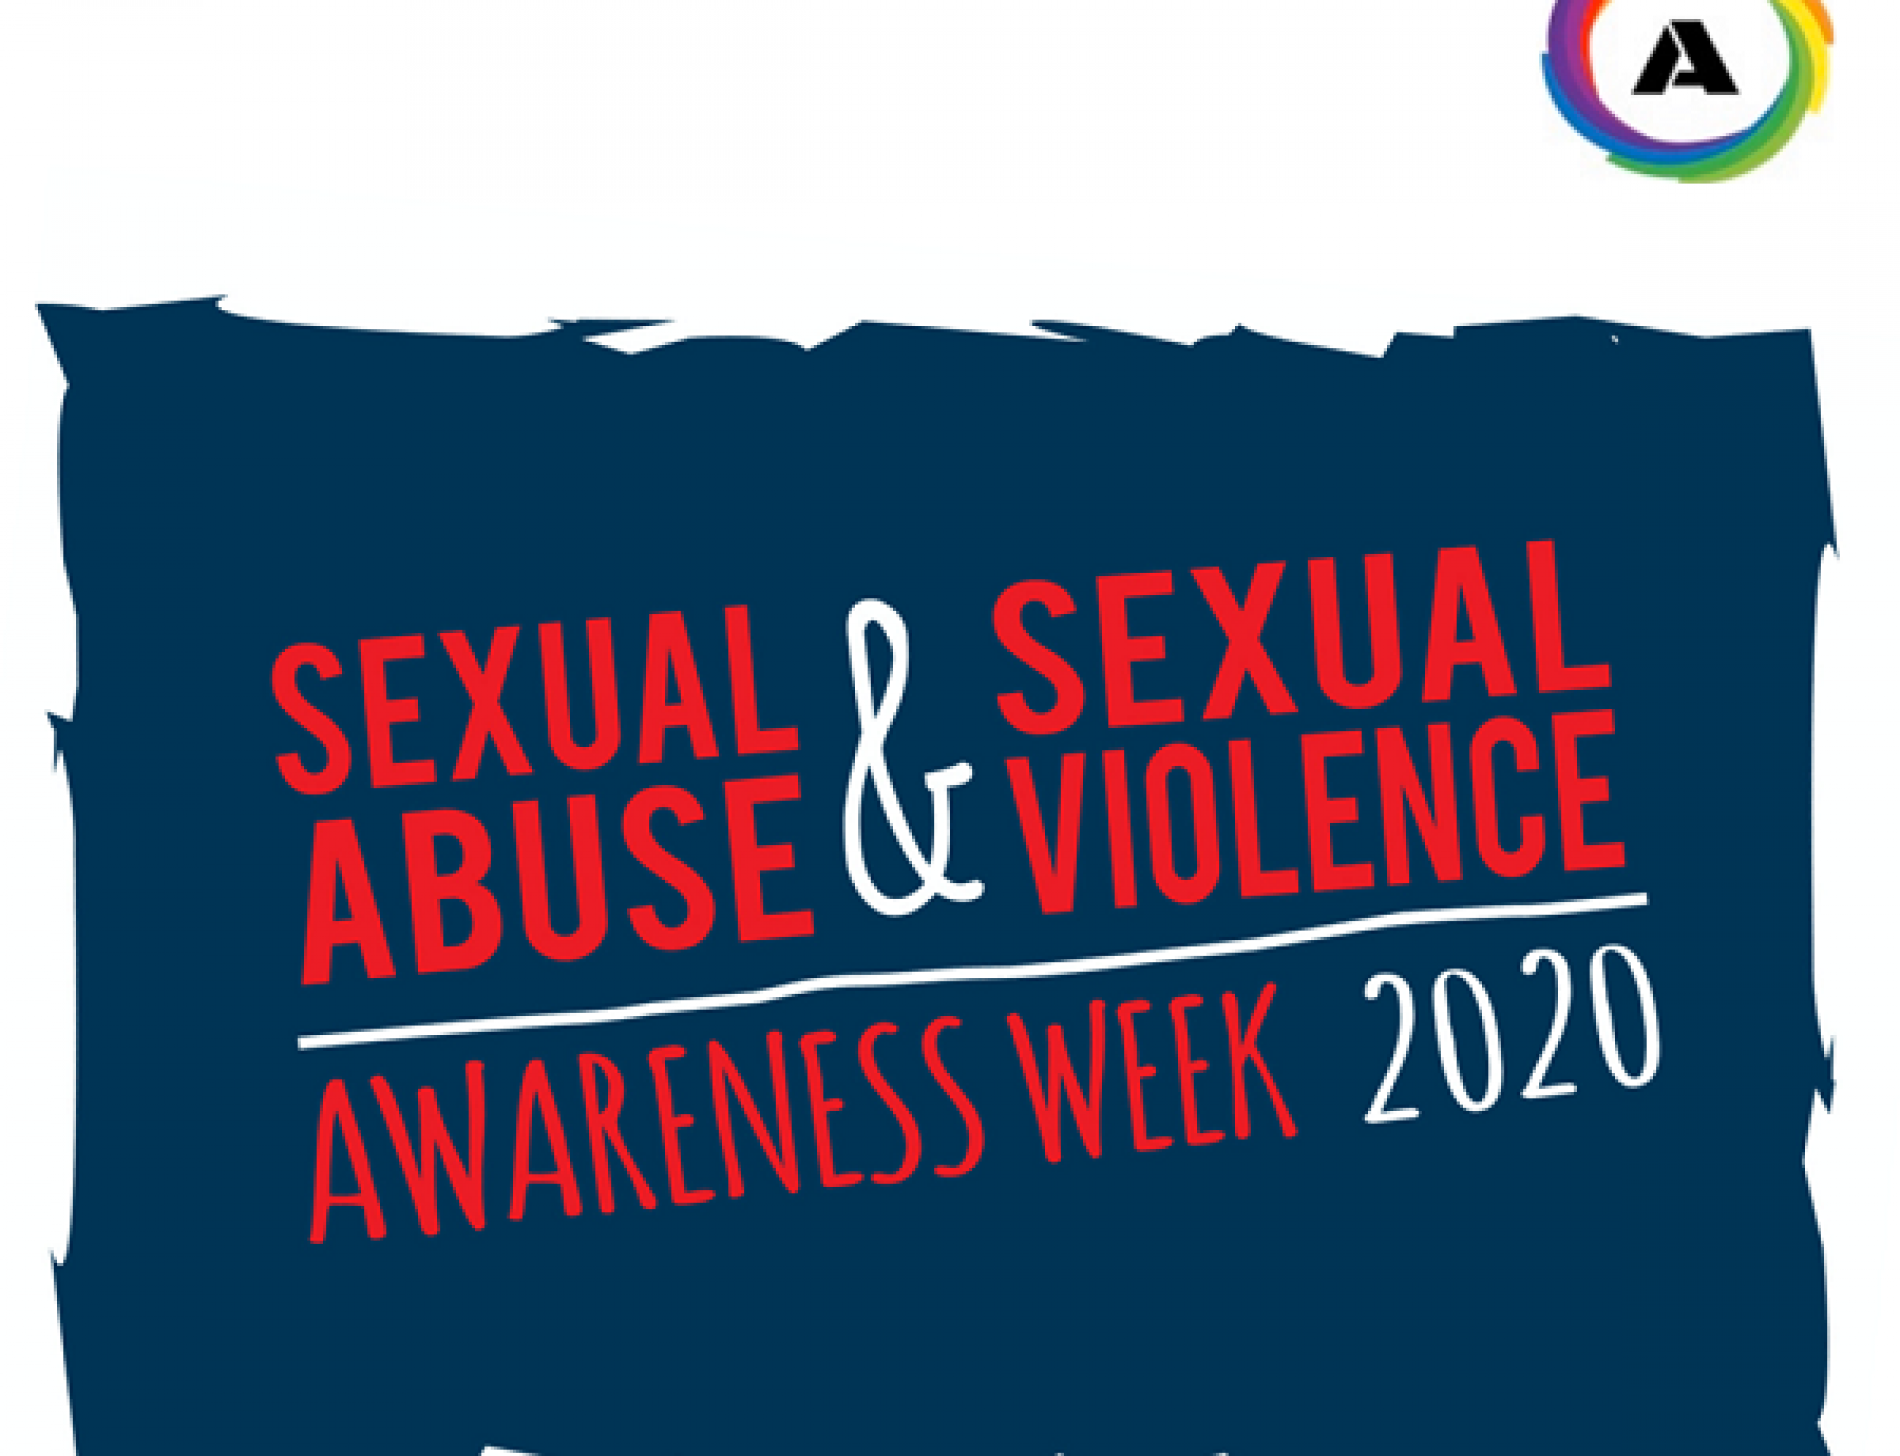 #ItsNotOK: Your Stories Are Needed For The Sexual Abuse/Sexual Violence Campaign